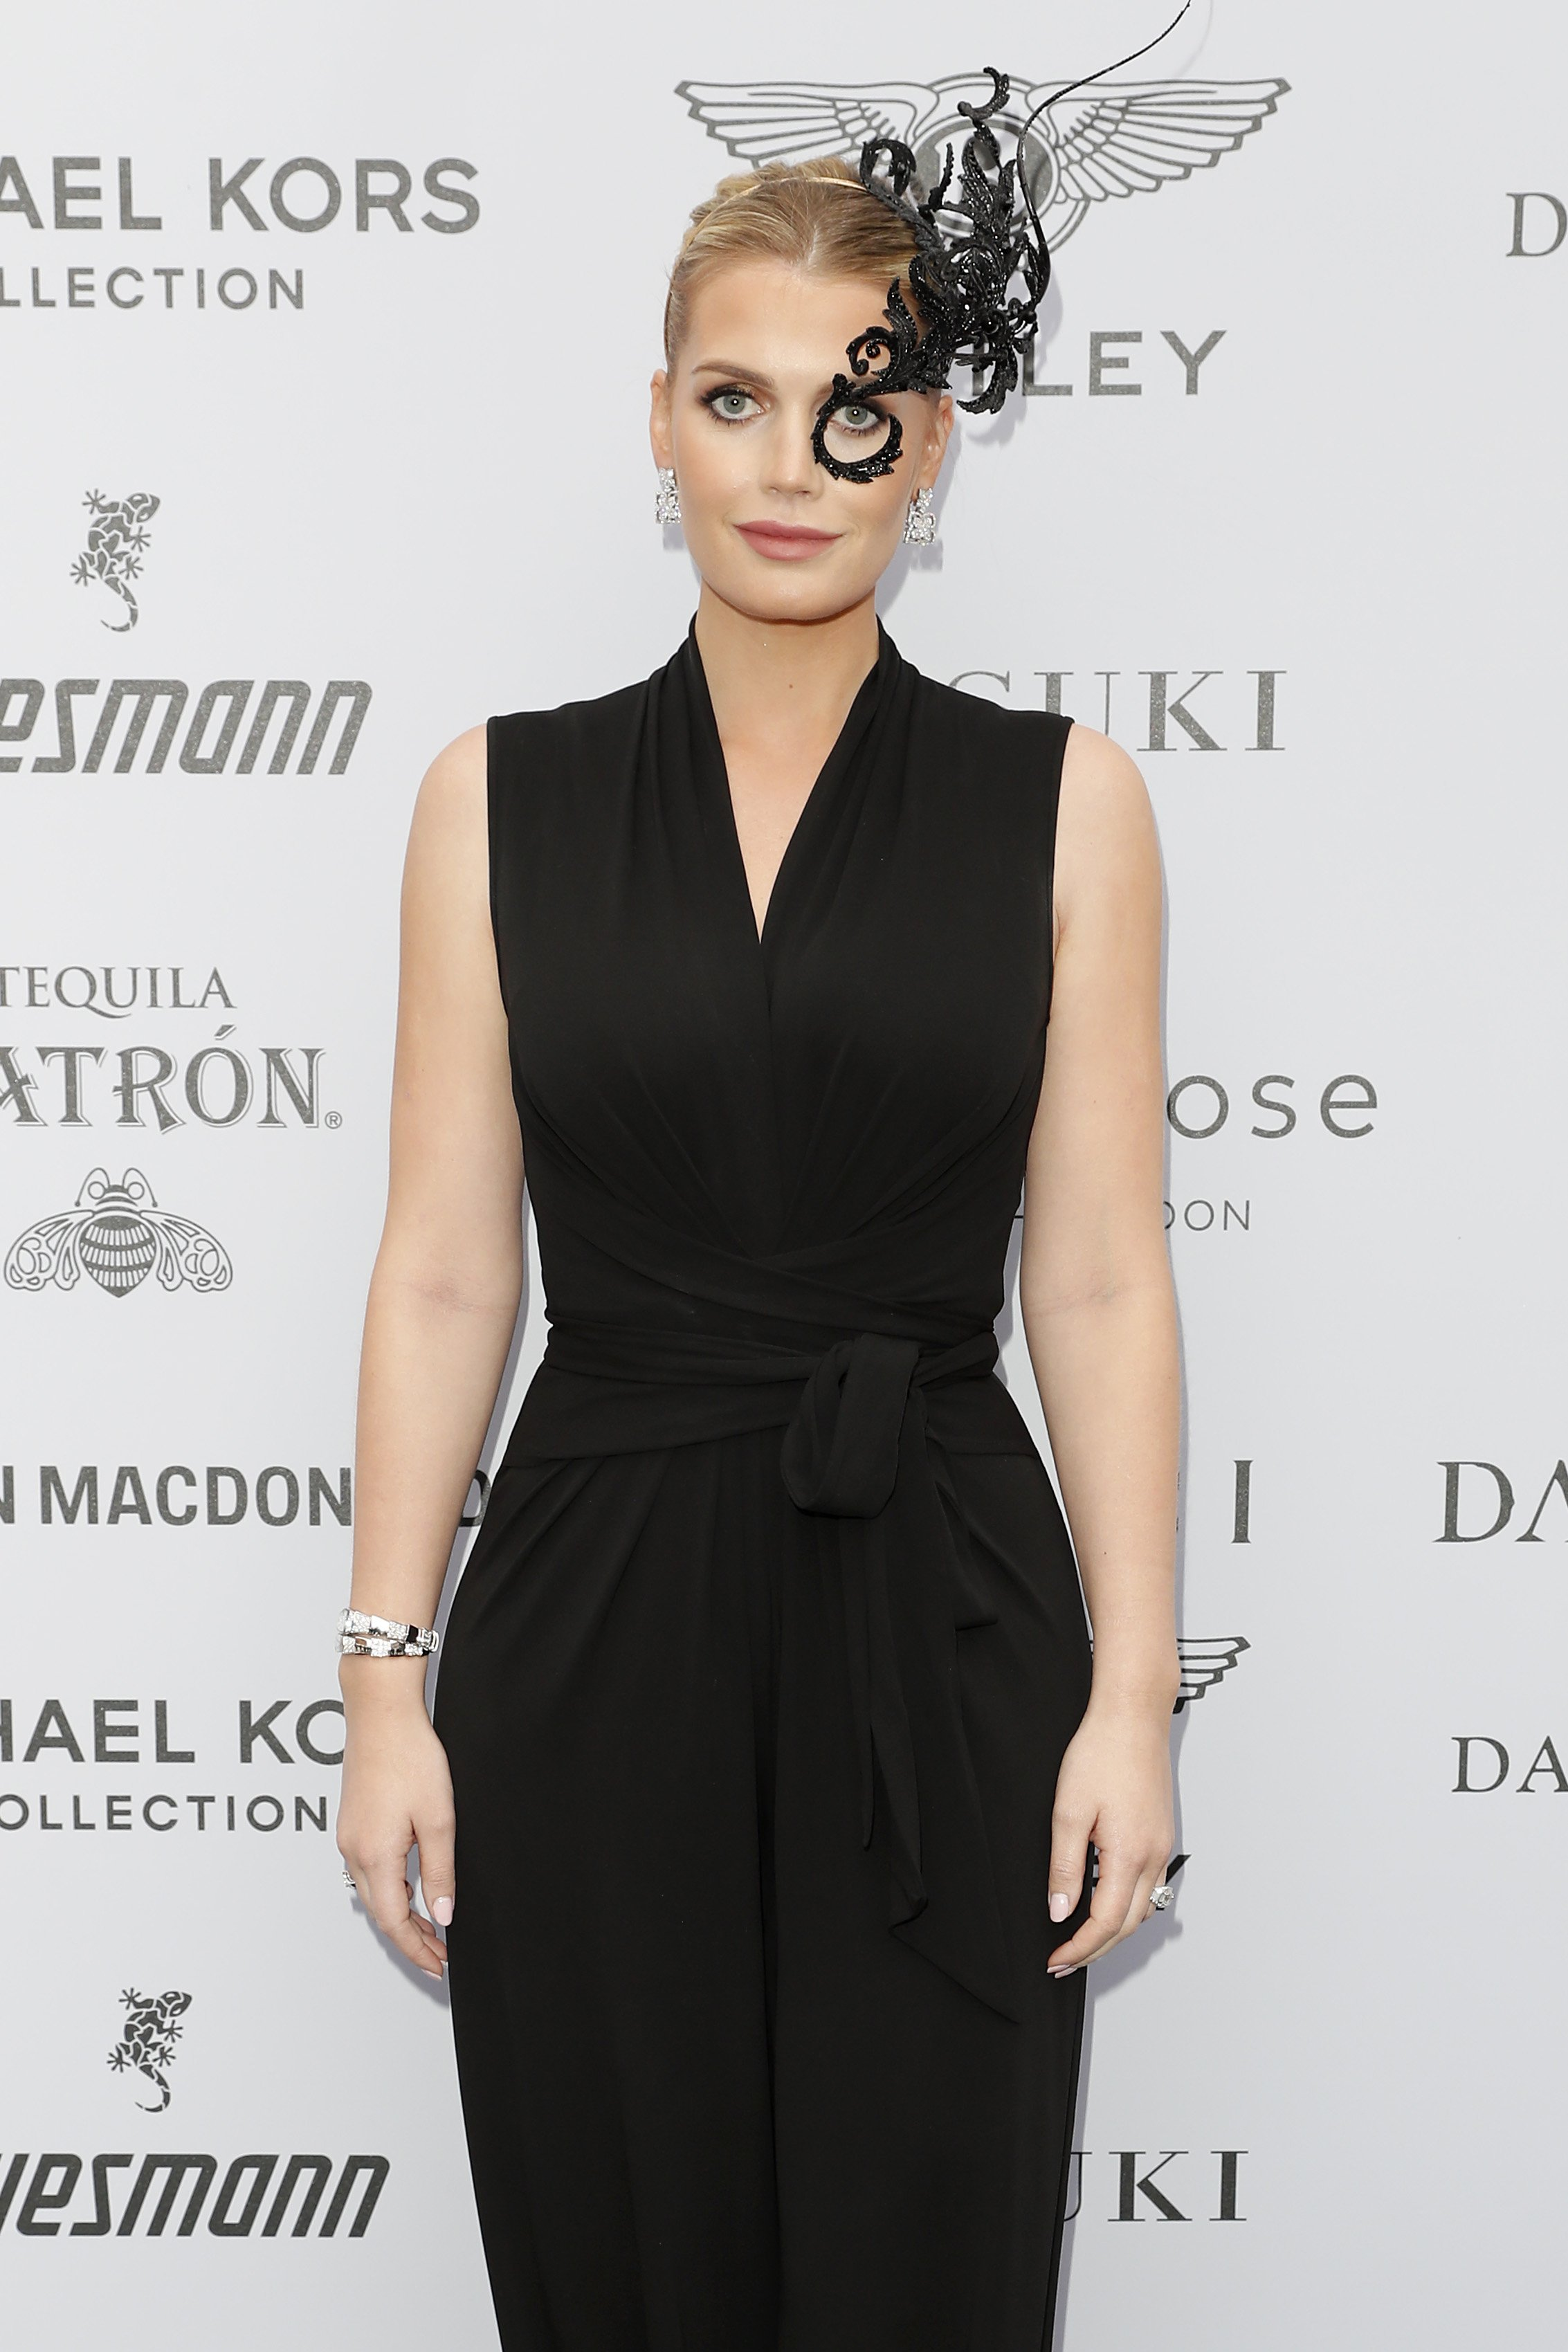 Lady Kitty Spencer attends a Masquerade Ball for a female charity event in London, England on June 5, 2019 | Photo: Getty Images